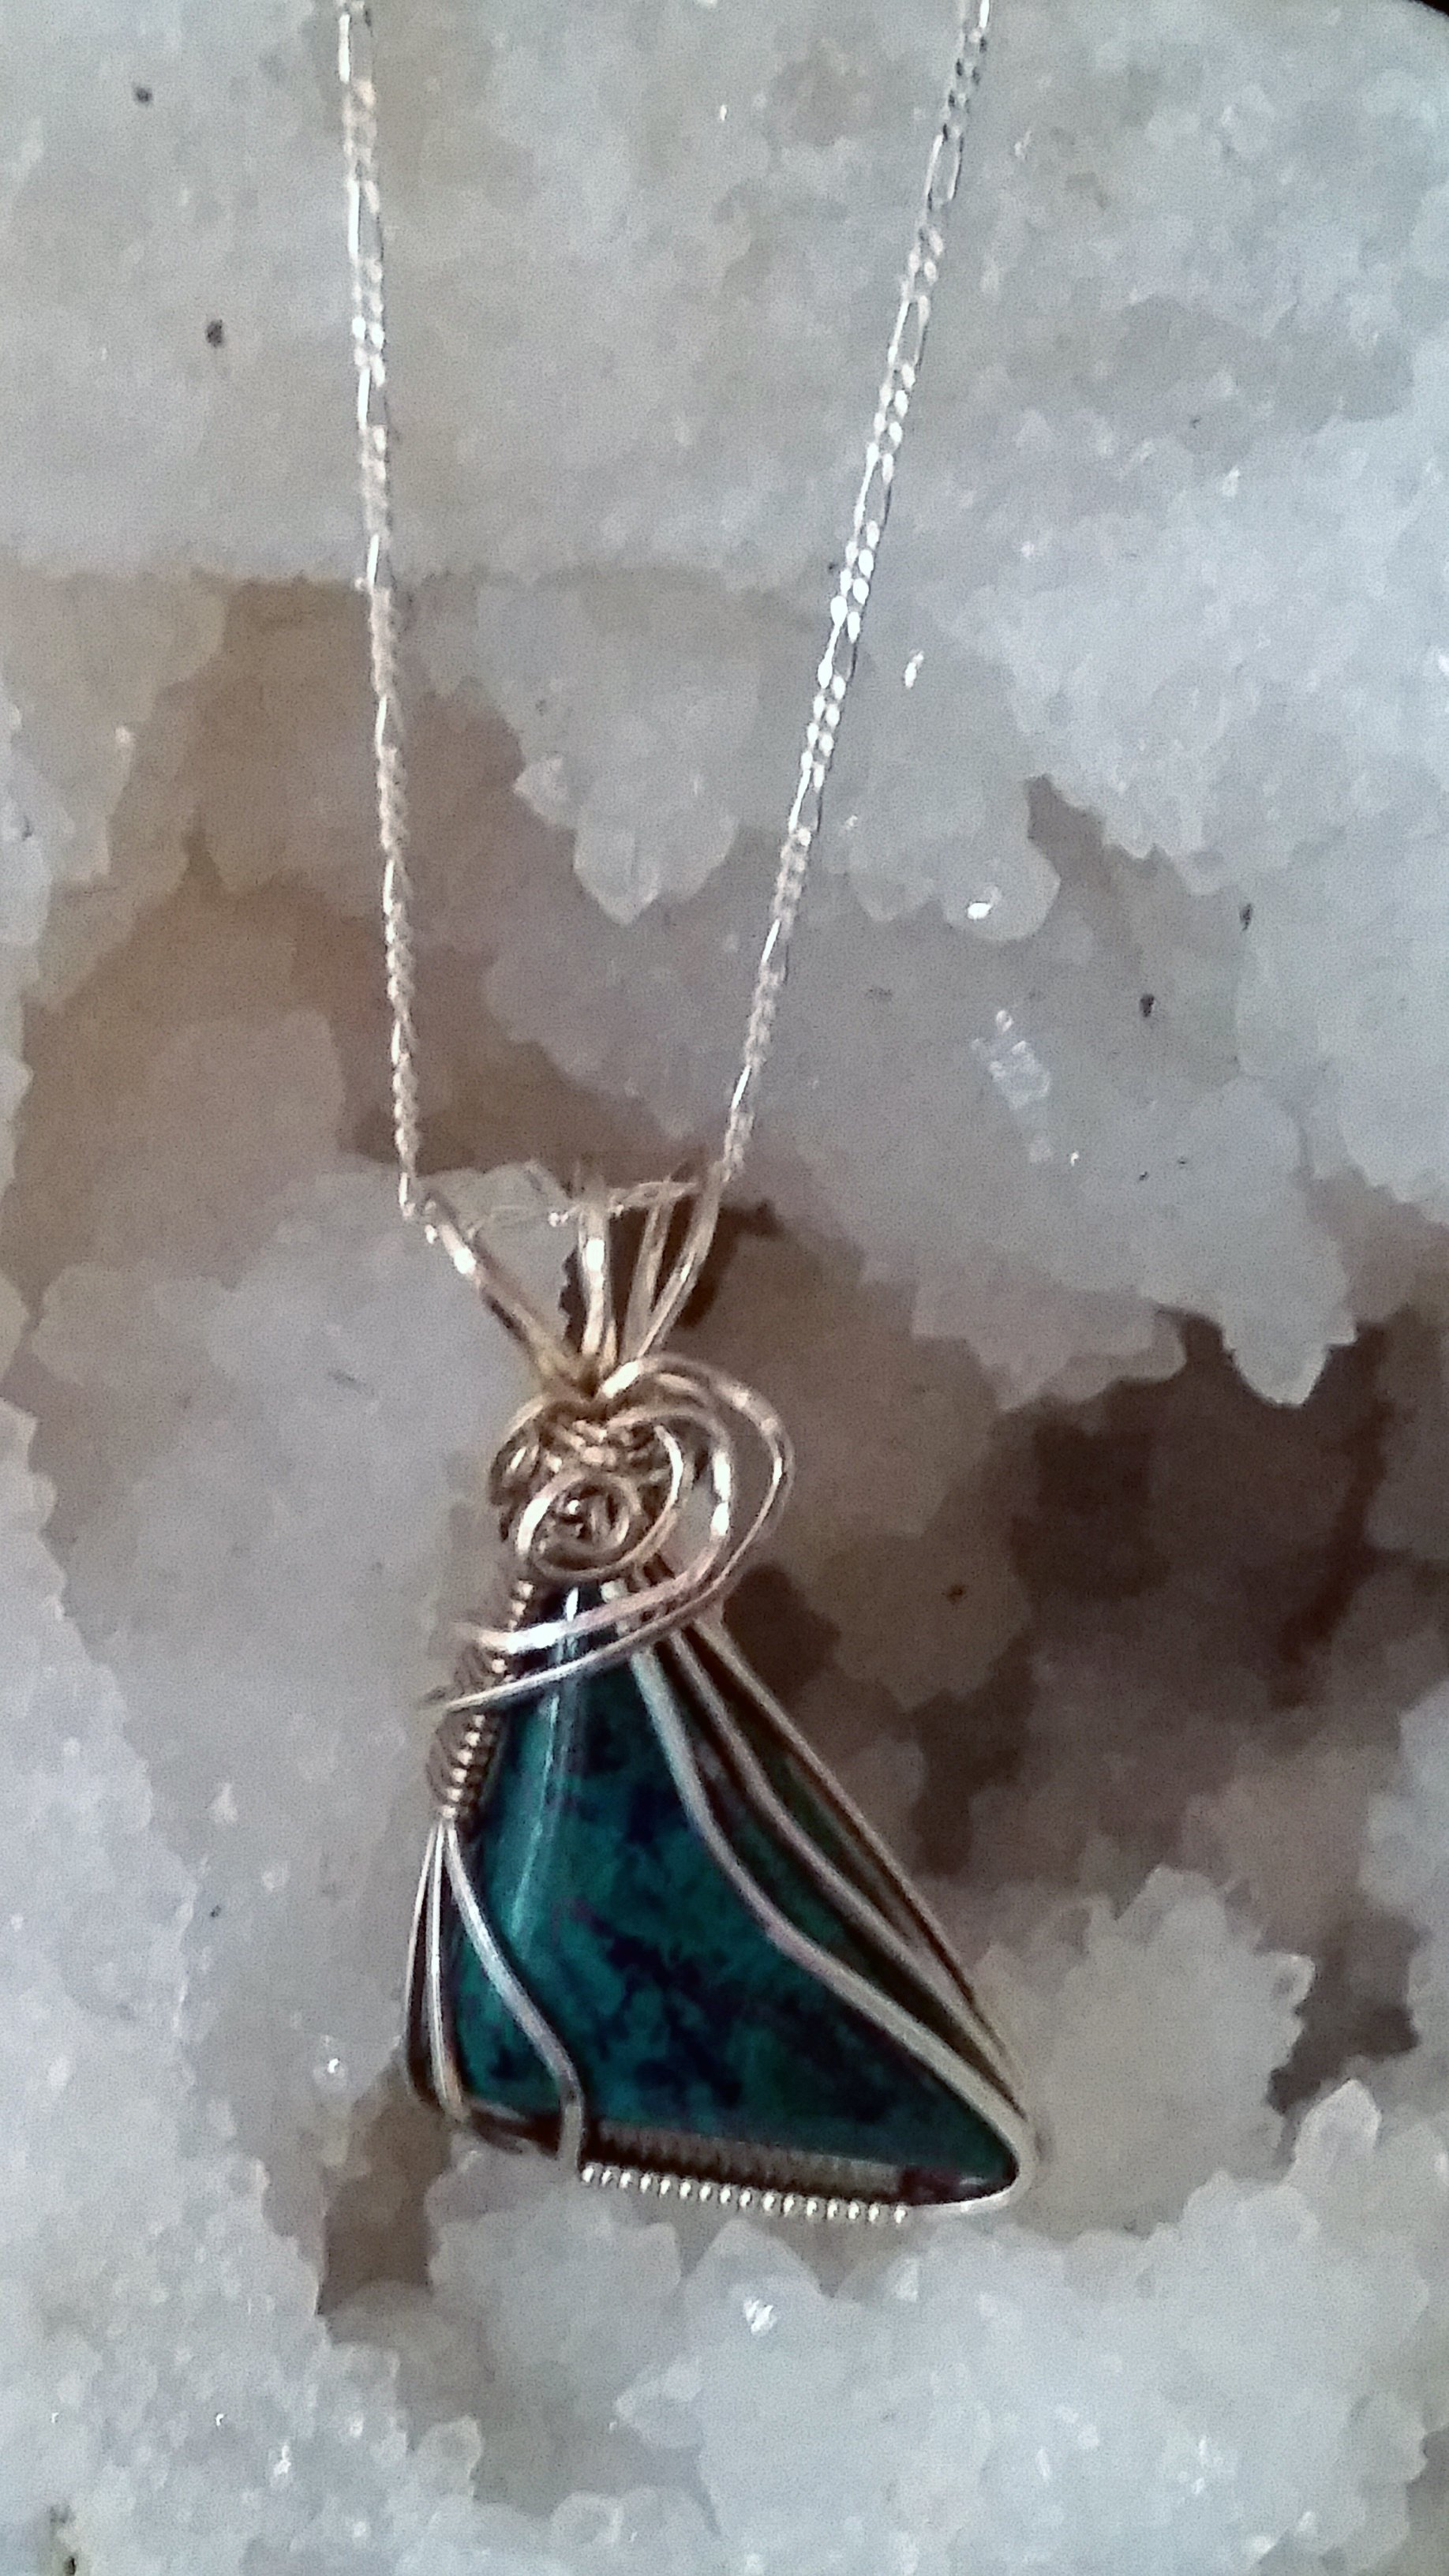 The beautiful combination of Malachite-Chrysocolla brings serenity, tranquility, and calming energies, making it a beautiful crystal to wear as a pendant. It brings the energy of new beginnings, helping to facilitate smooth transitions in times of change. Working with Malachite-Chrysocolla is one of the most healing ways to release emotional blockages. It is also invaluable in creative expression.